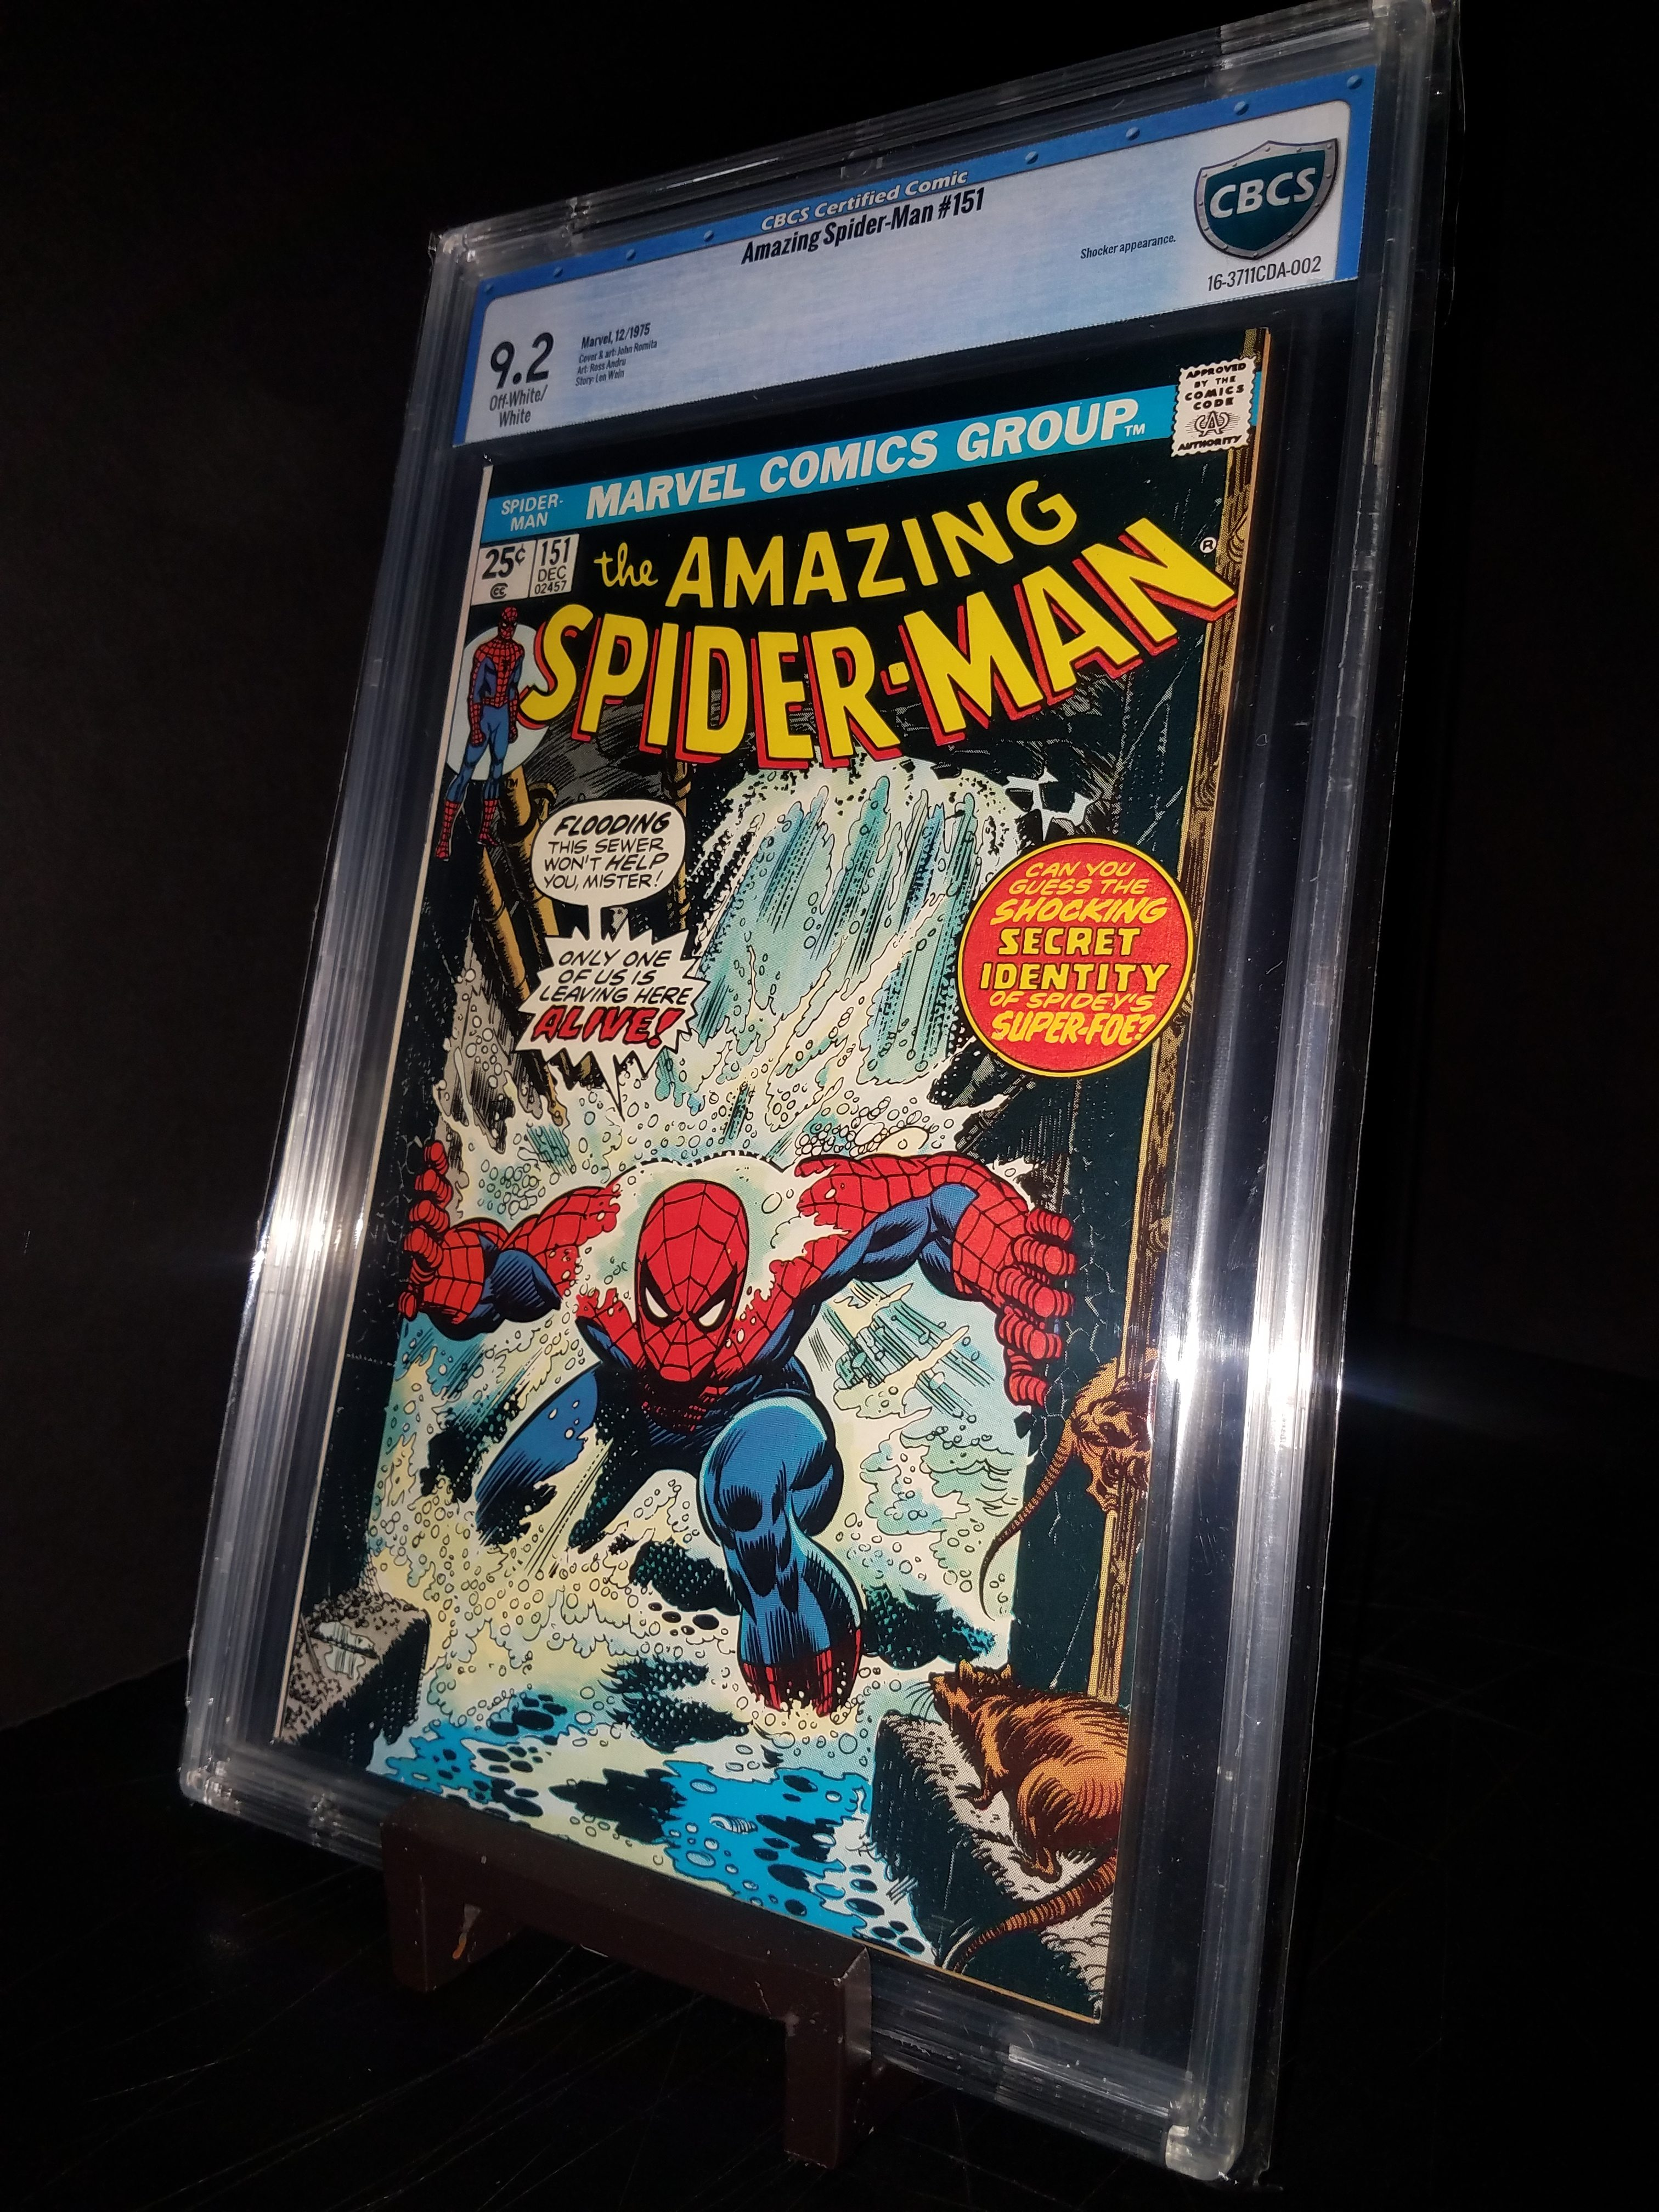 Amazing Spiderman #151 CBCS 9.2 OWP